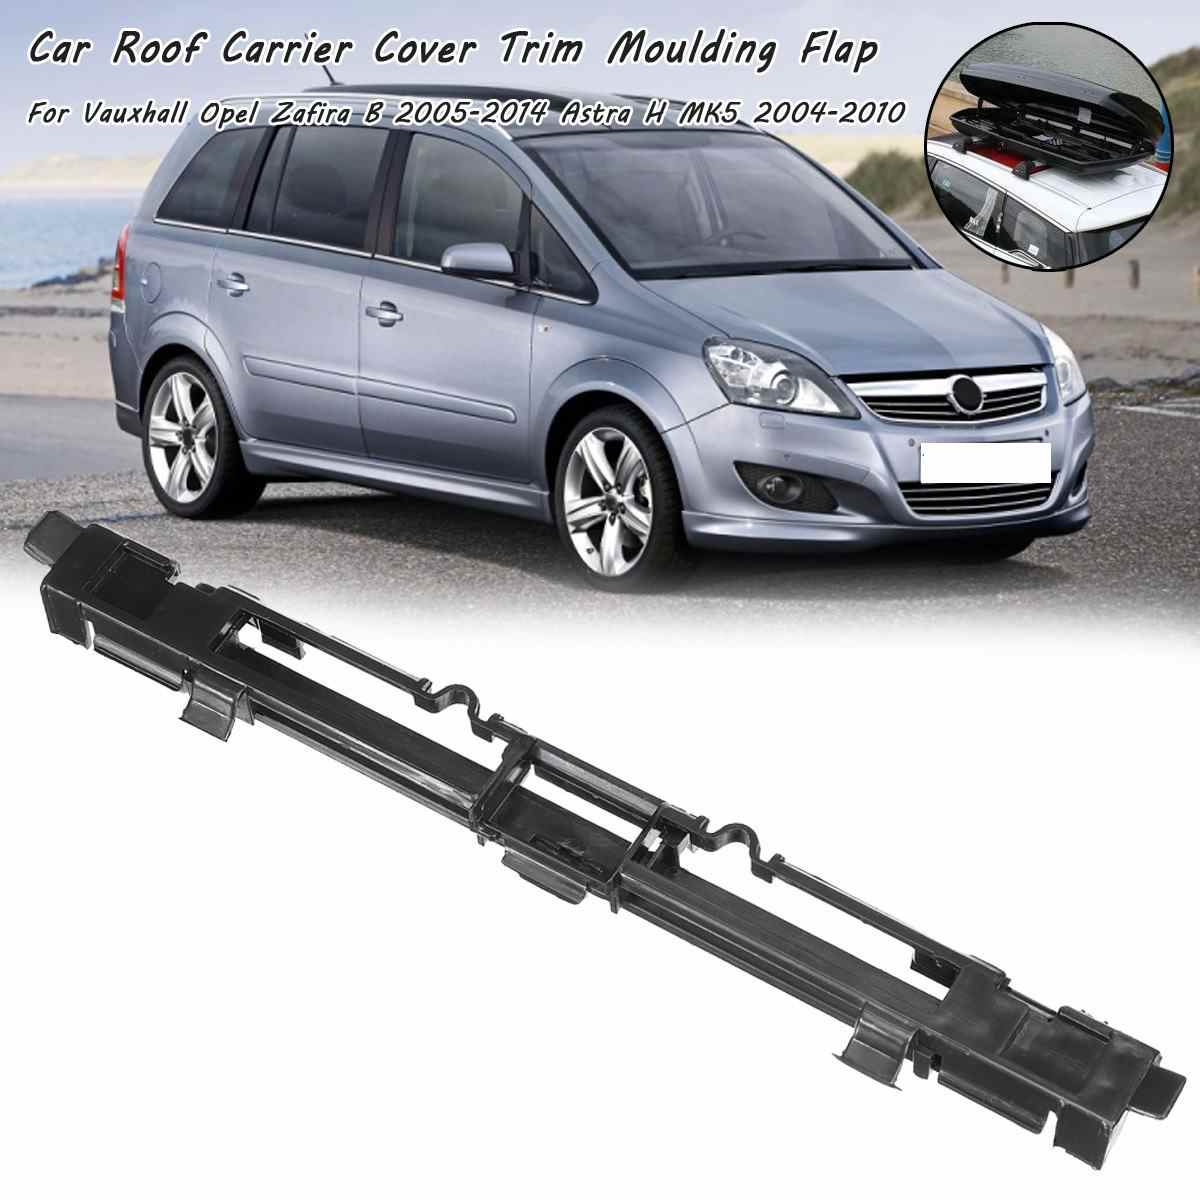 Car Roof Carrier Cover Rail Trim Moulding Flap 2004-2009 2010 For Vauxhall Opel Zafira B 2005-2014 Astra H MK5 #5187915 13125723